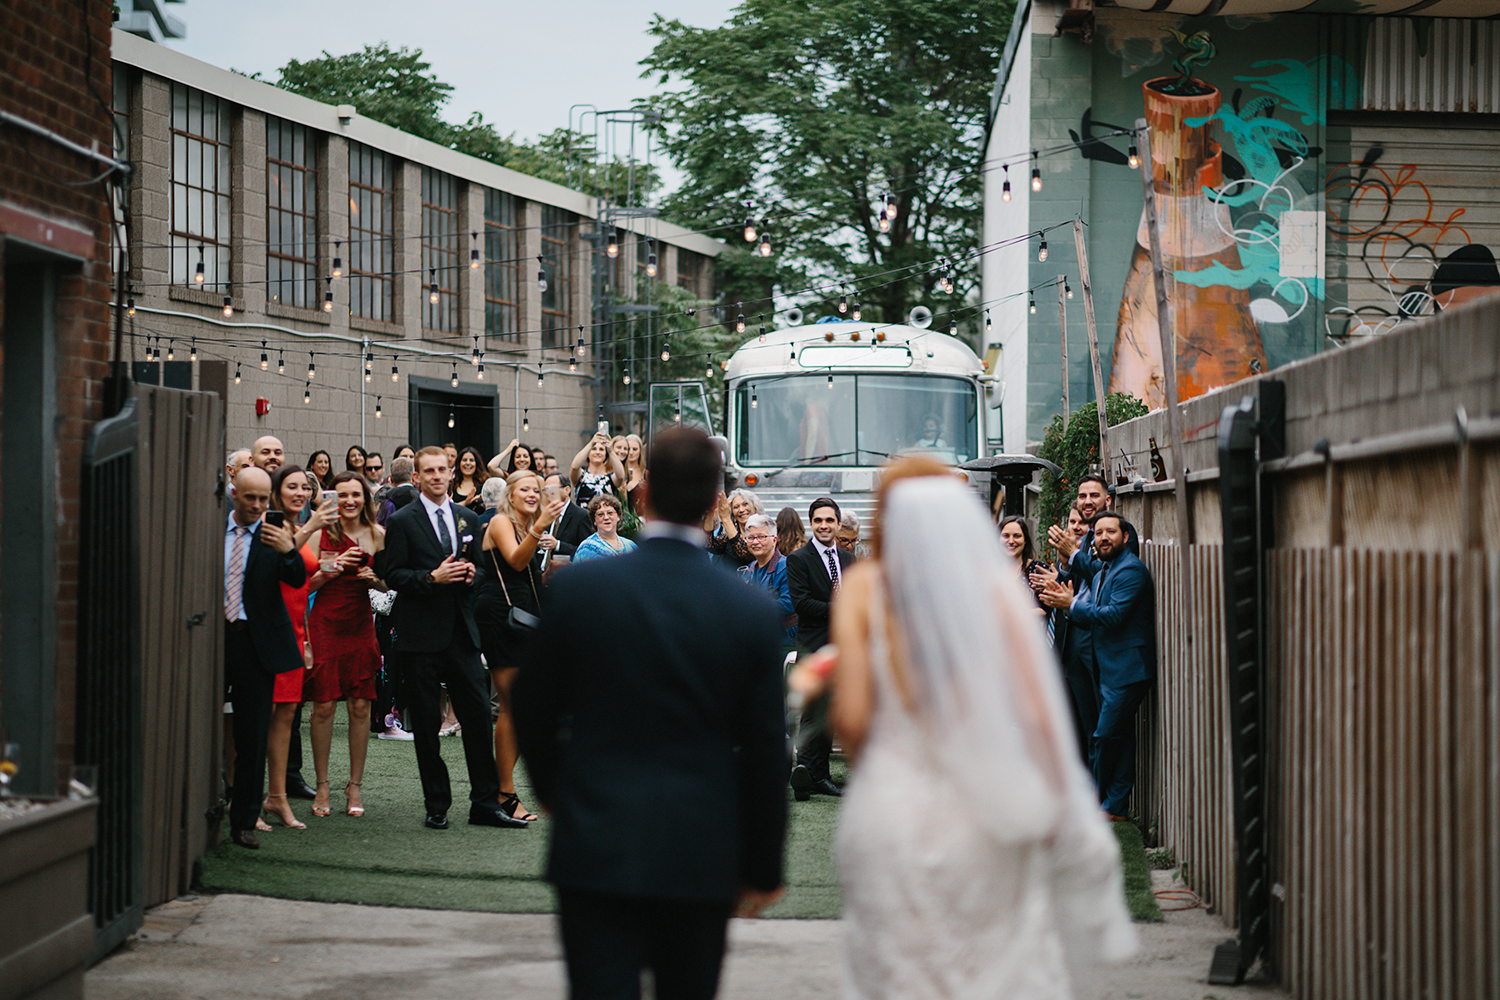 torontos-best-wedding-photographers-ryanne-hollies-photography-photojournalism-artistic-moody-toronto-airship37-graffiti-editorial-cocktail-hour-guests-cheering-for-bride-and-groom.jpg